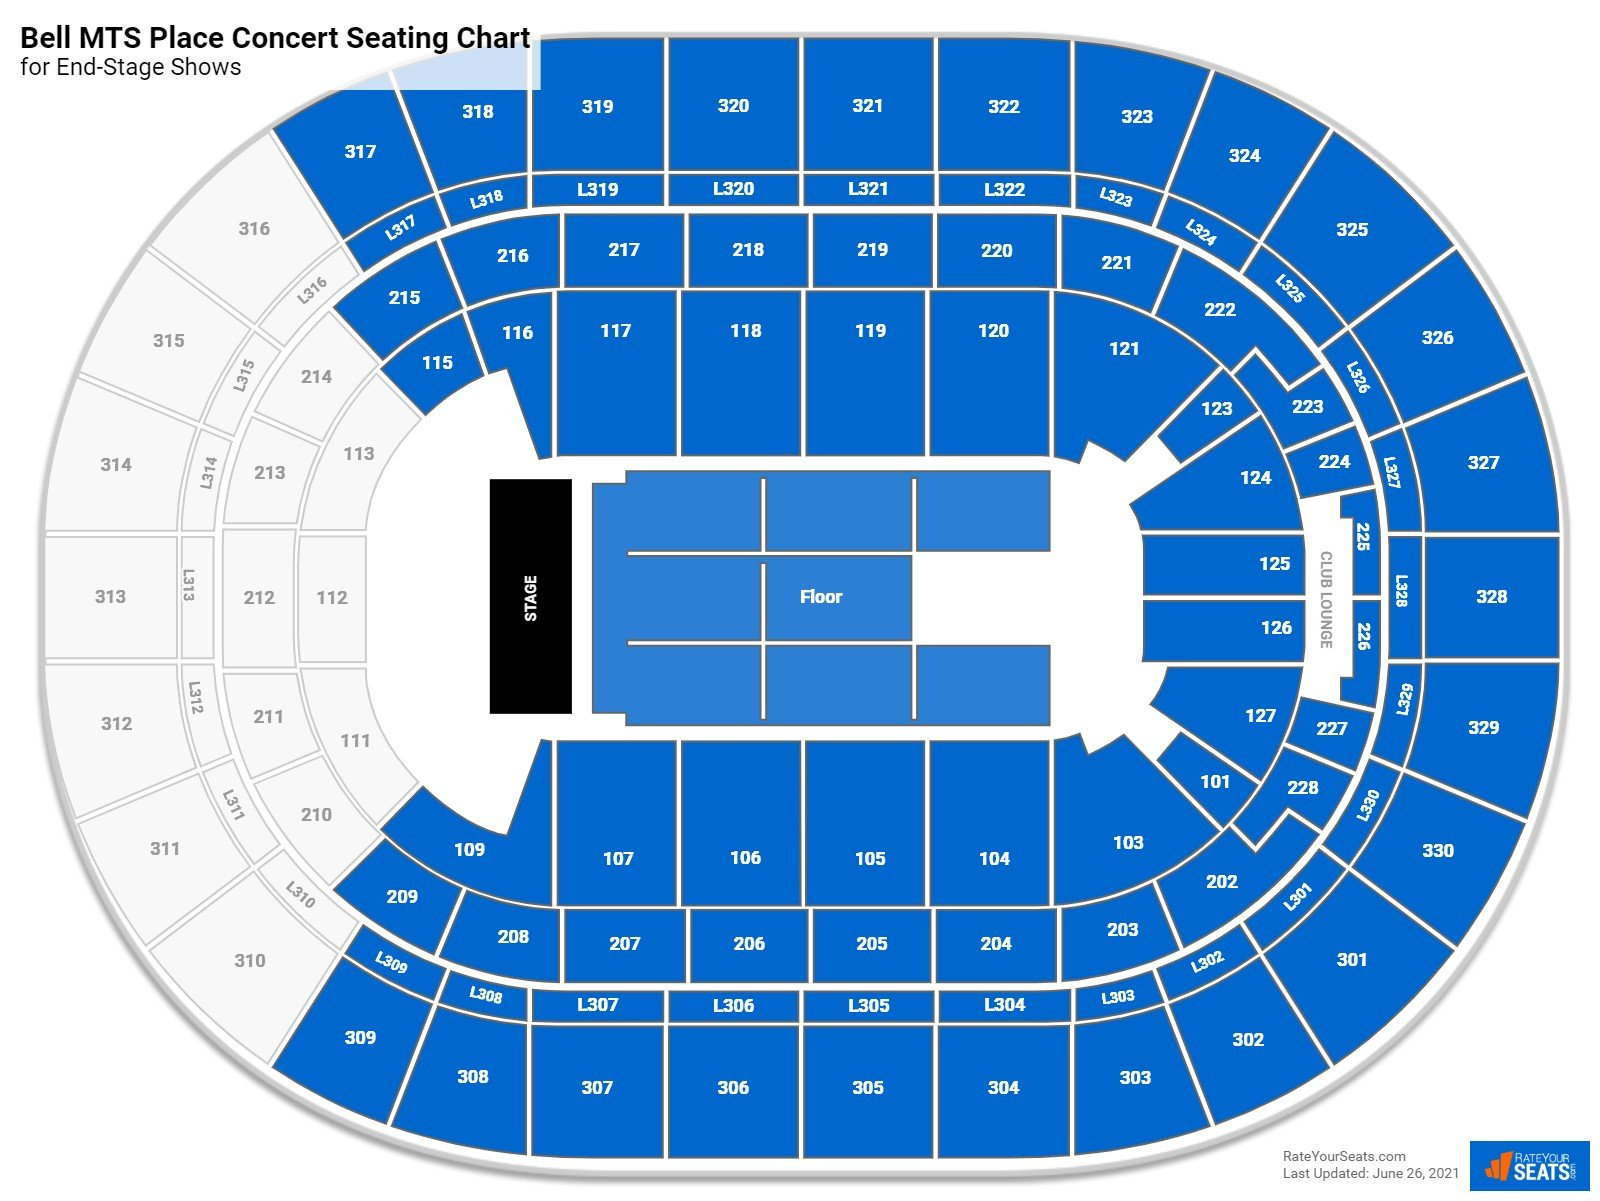 Bell MTS Place Seating Chart for Concerts